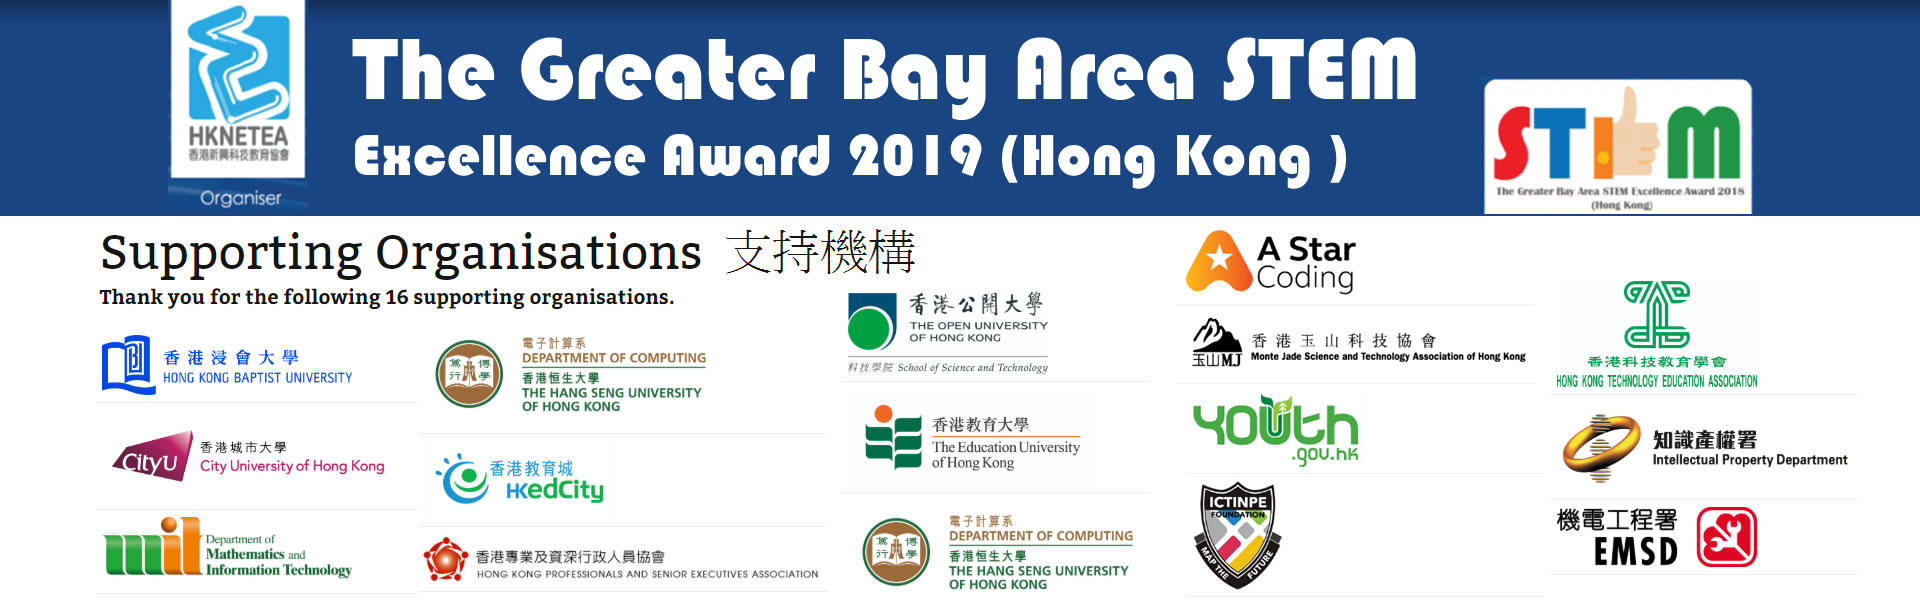 A Star Coding is proud to be a supporting organization of the Greater Bay Area Stem Excellence Award 2019 (Hong Kong)